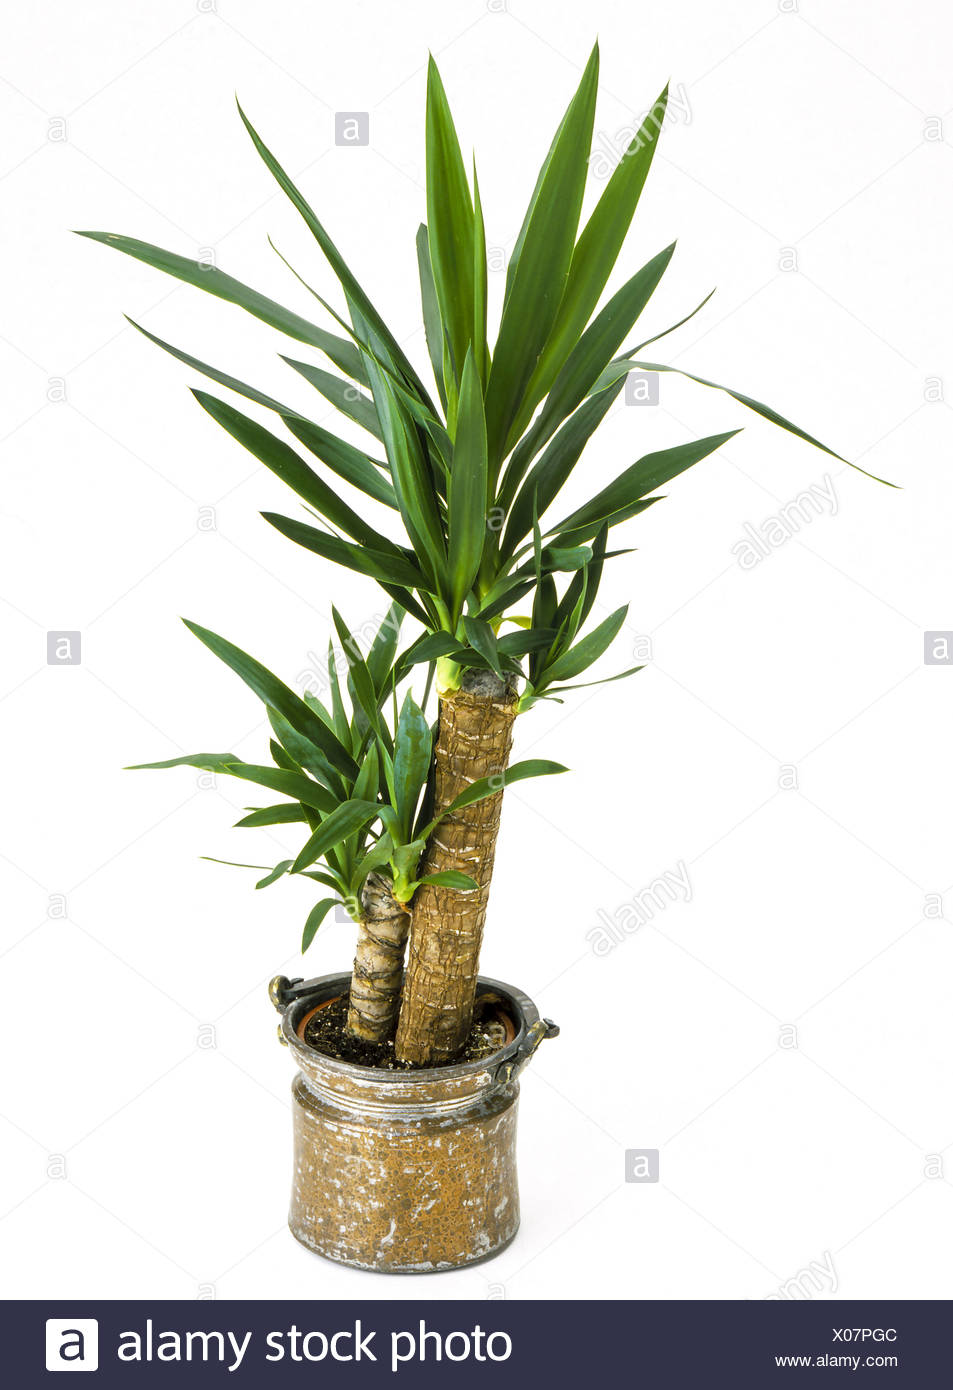 Topfpflanze Palme Zimmerpflanzen Cut Out Stock Images Pictures Alamy